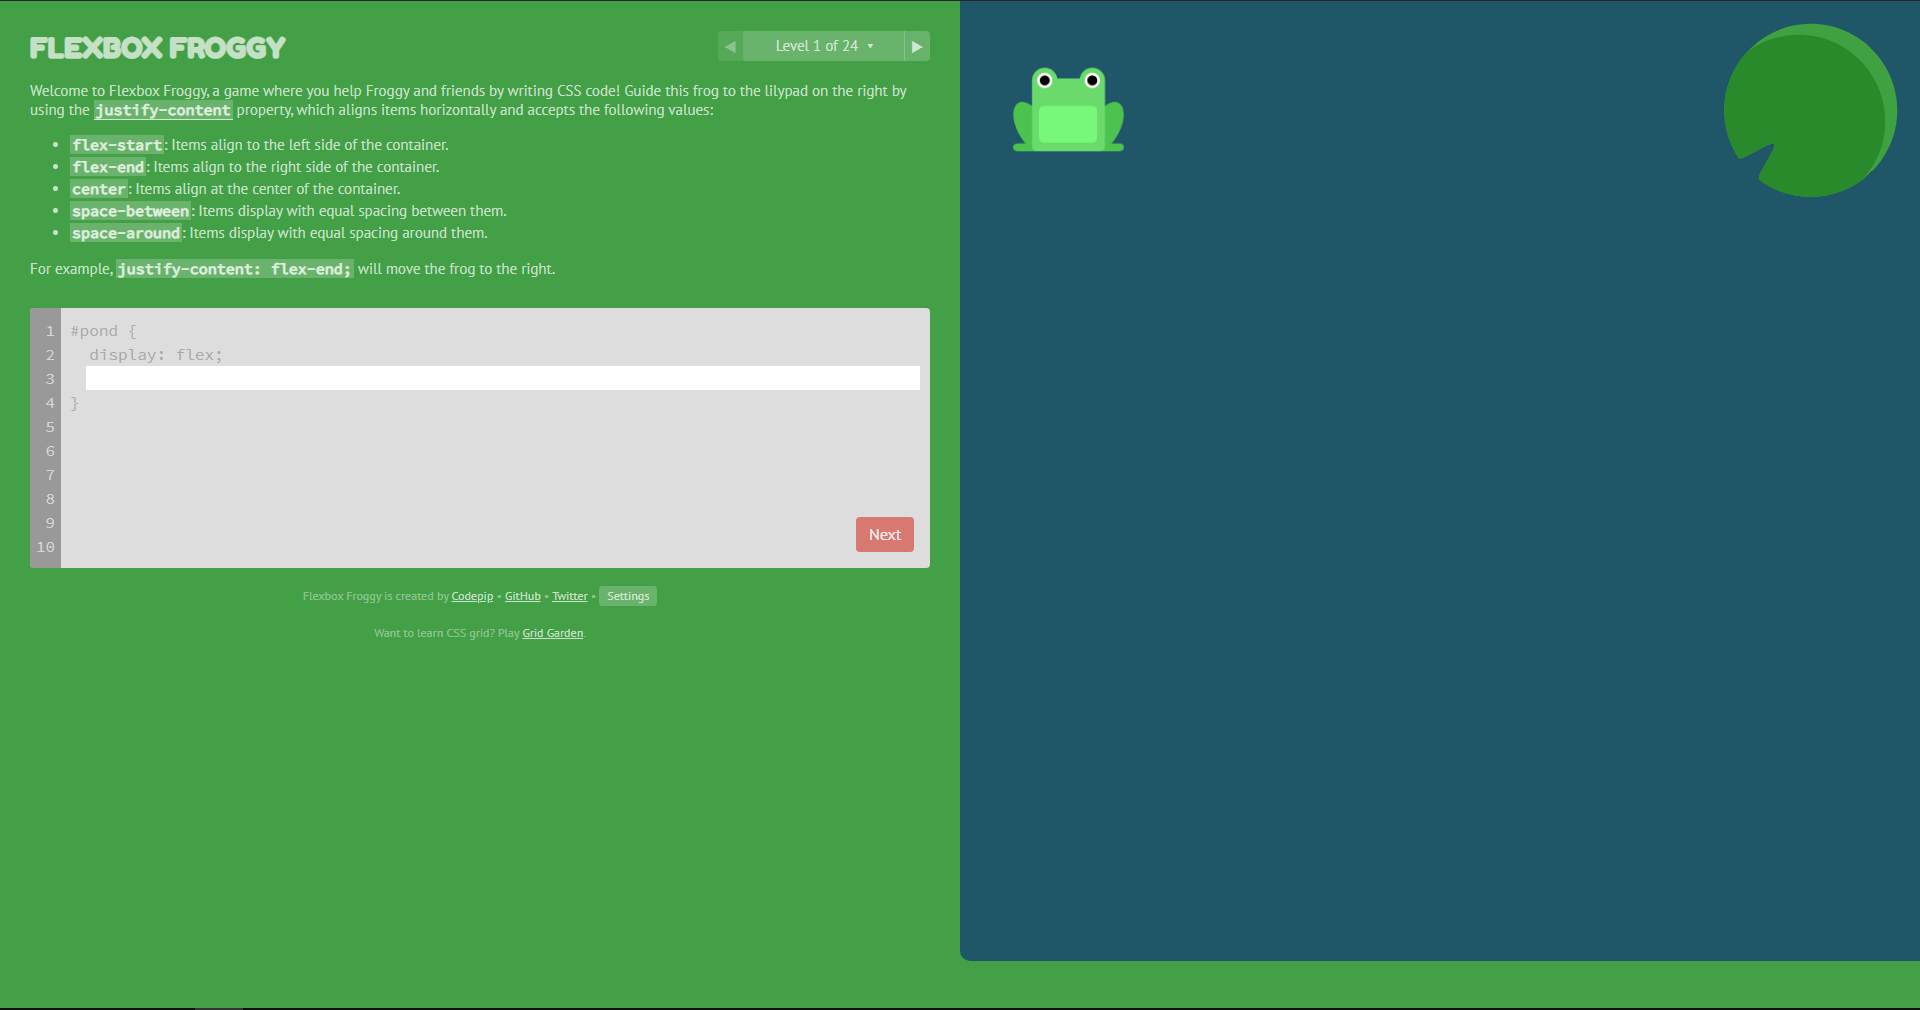 flexbox_froggy_level1